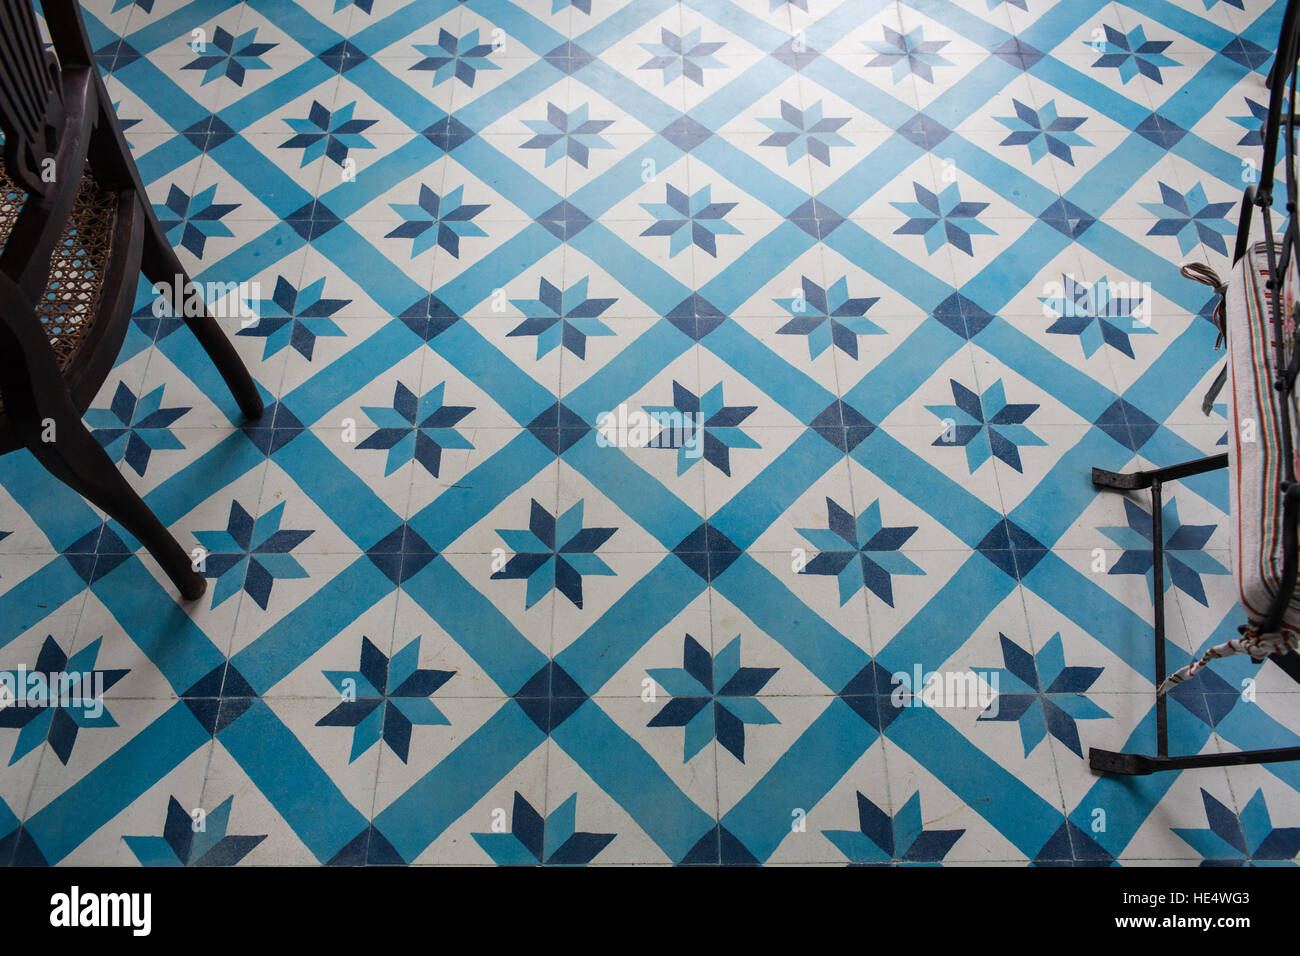 Modern floor tiles with blue colored geometric design in a ...